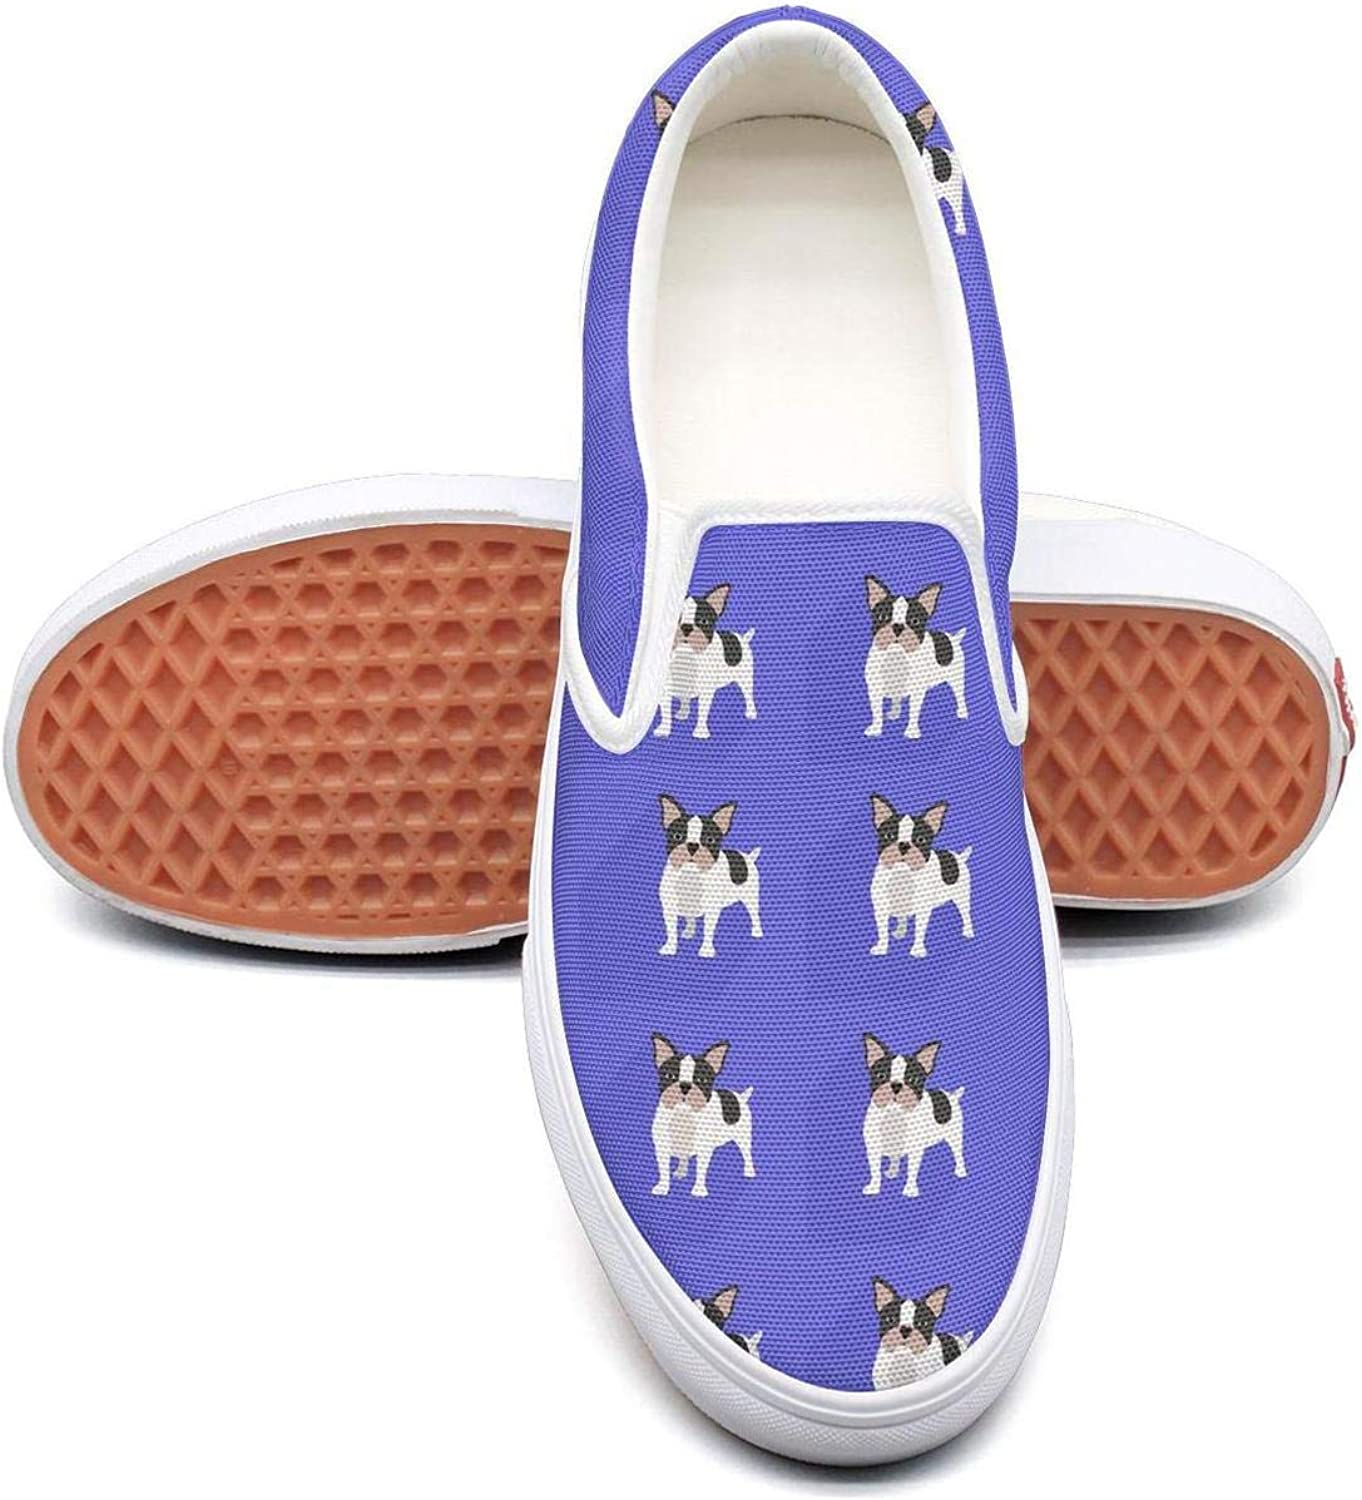 Refyds-es Funny French Bulldog Womens Fashion Slip on Low Top Lightweight Canvas Athletic Sneakers